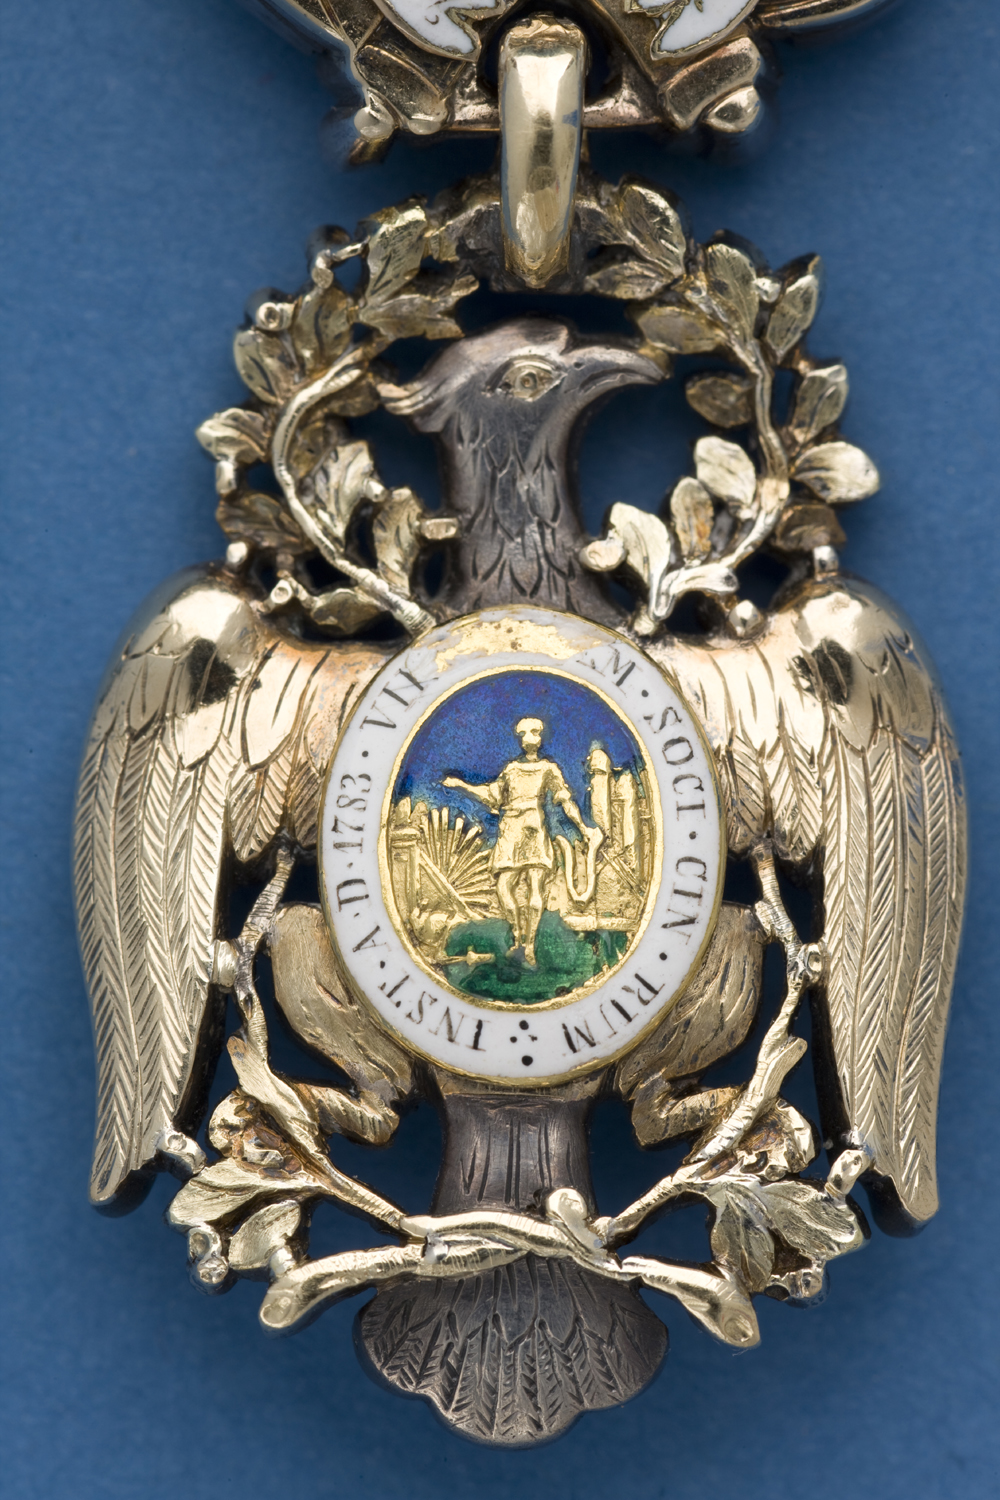 Detail of the back side of the gold-and-enamel body of the Diamond Eagle insignia